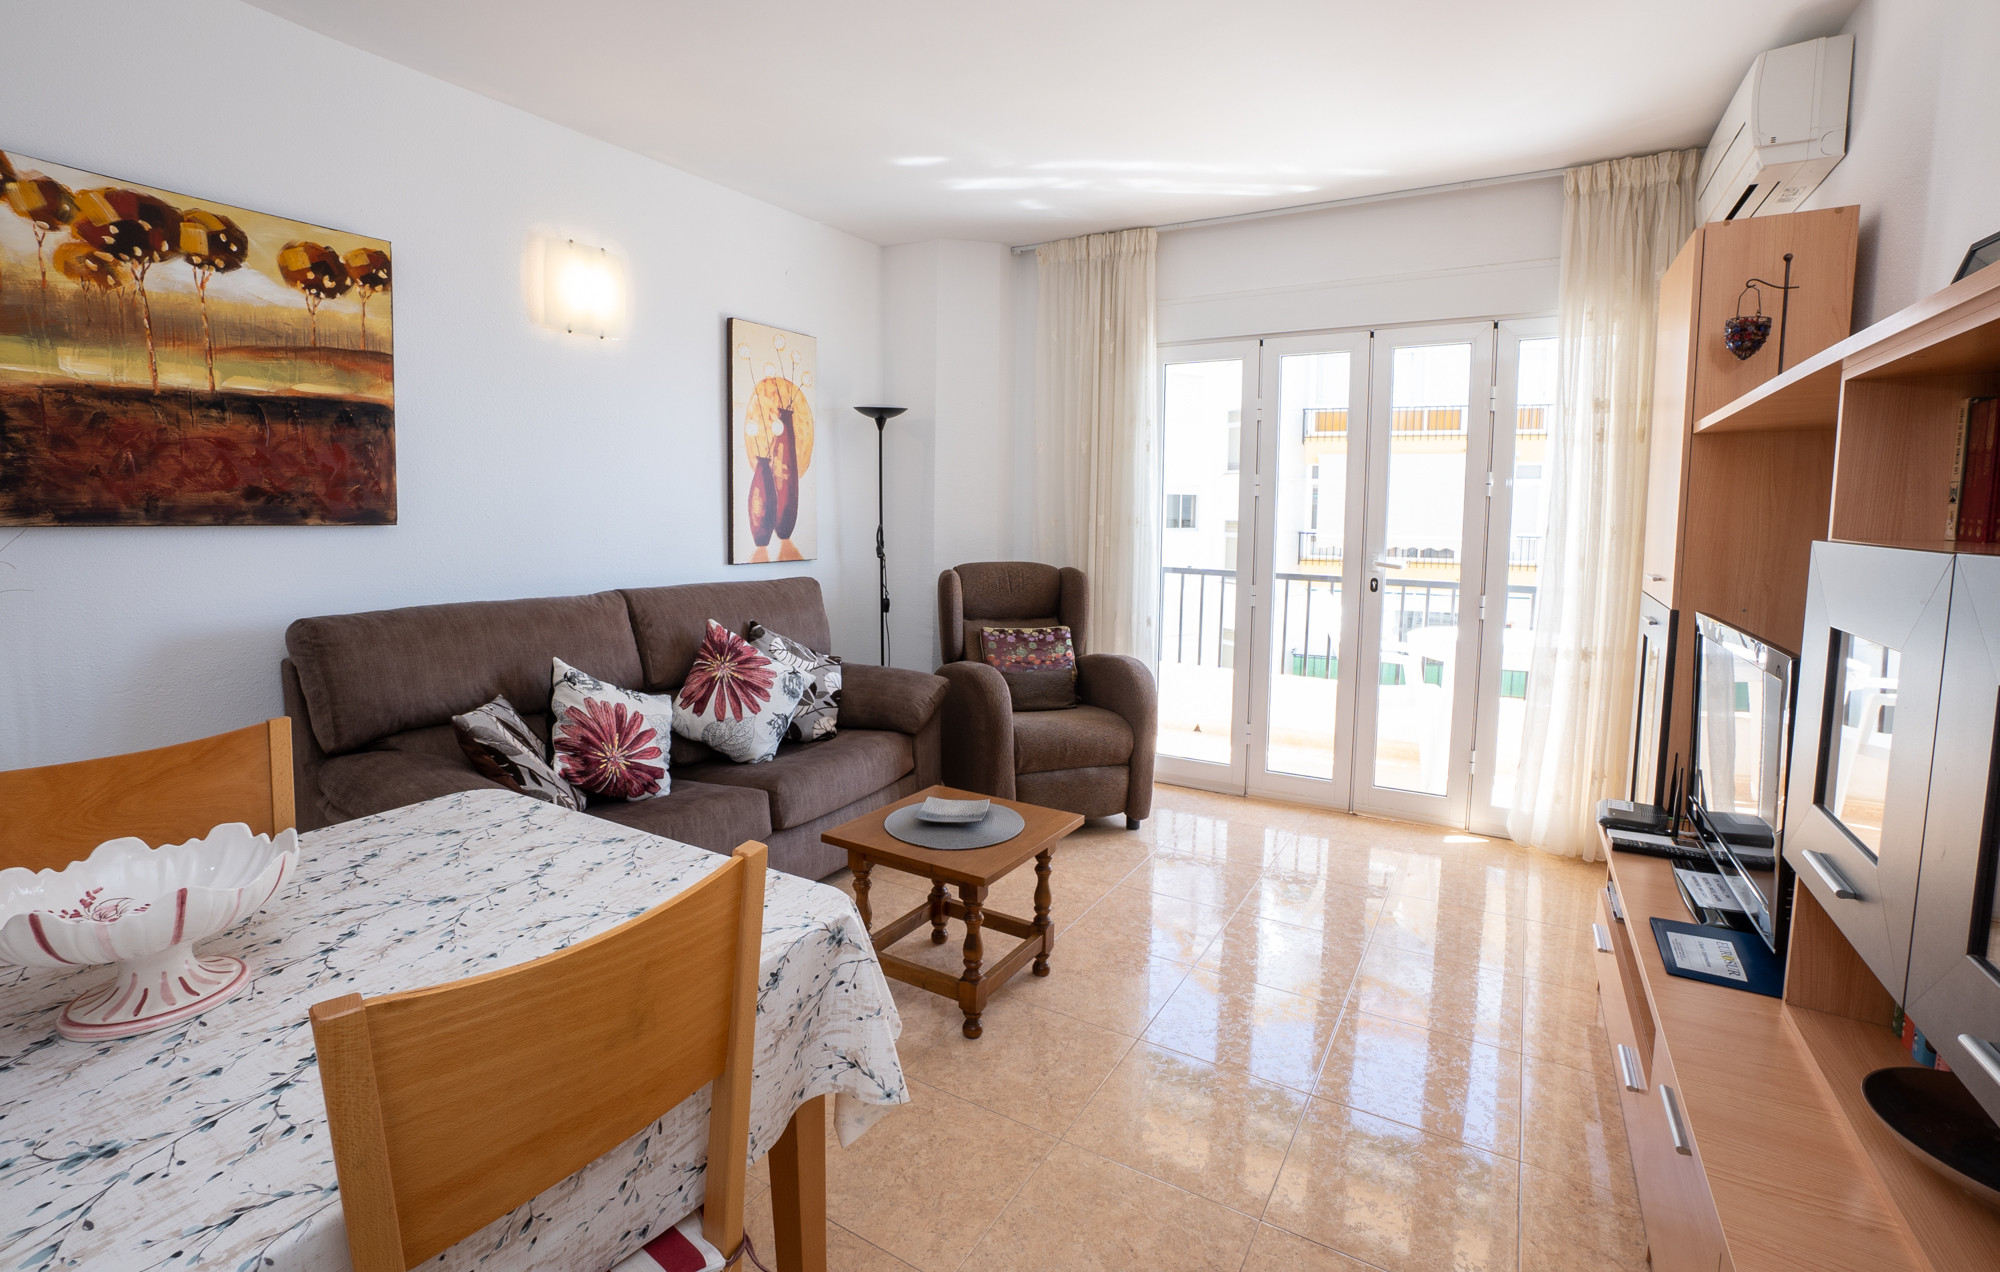 Ref. 190195 - Apartments in Nerja